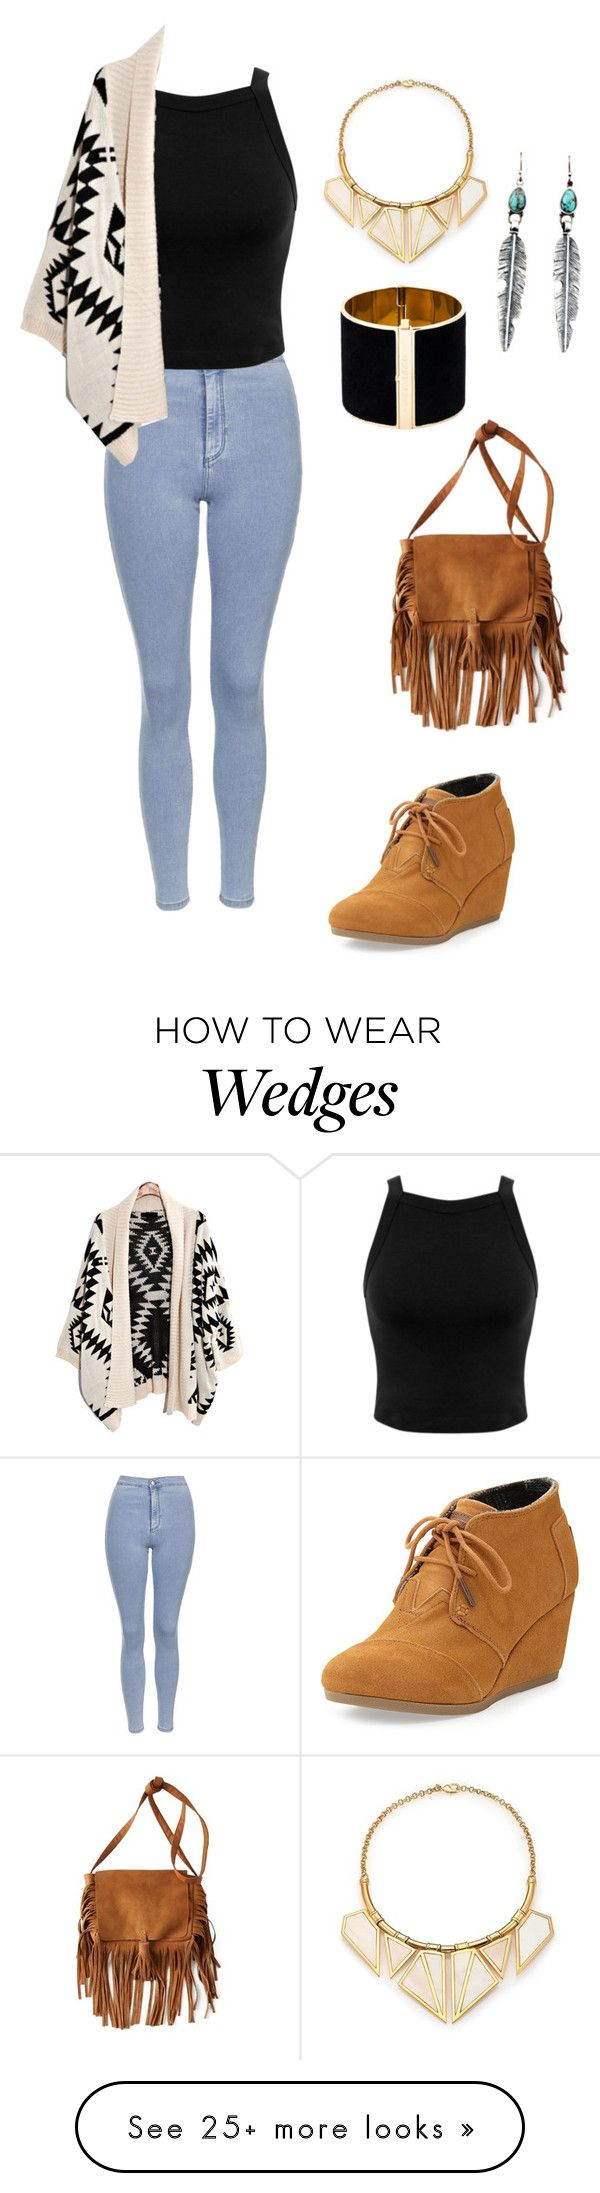 """Toms wedge booties #94"" by thereseatarwang on Polyvore featuring TOMS, Topshop, Miss Selfridge, Dsquared2, A Peace Treaty and American Eagle Outfitters"